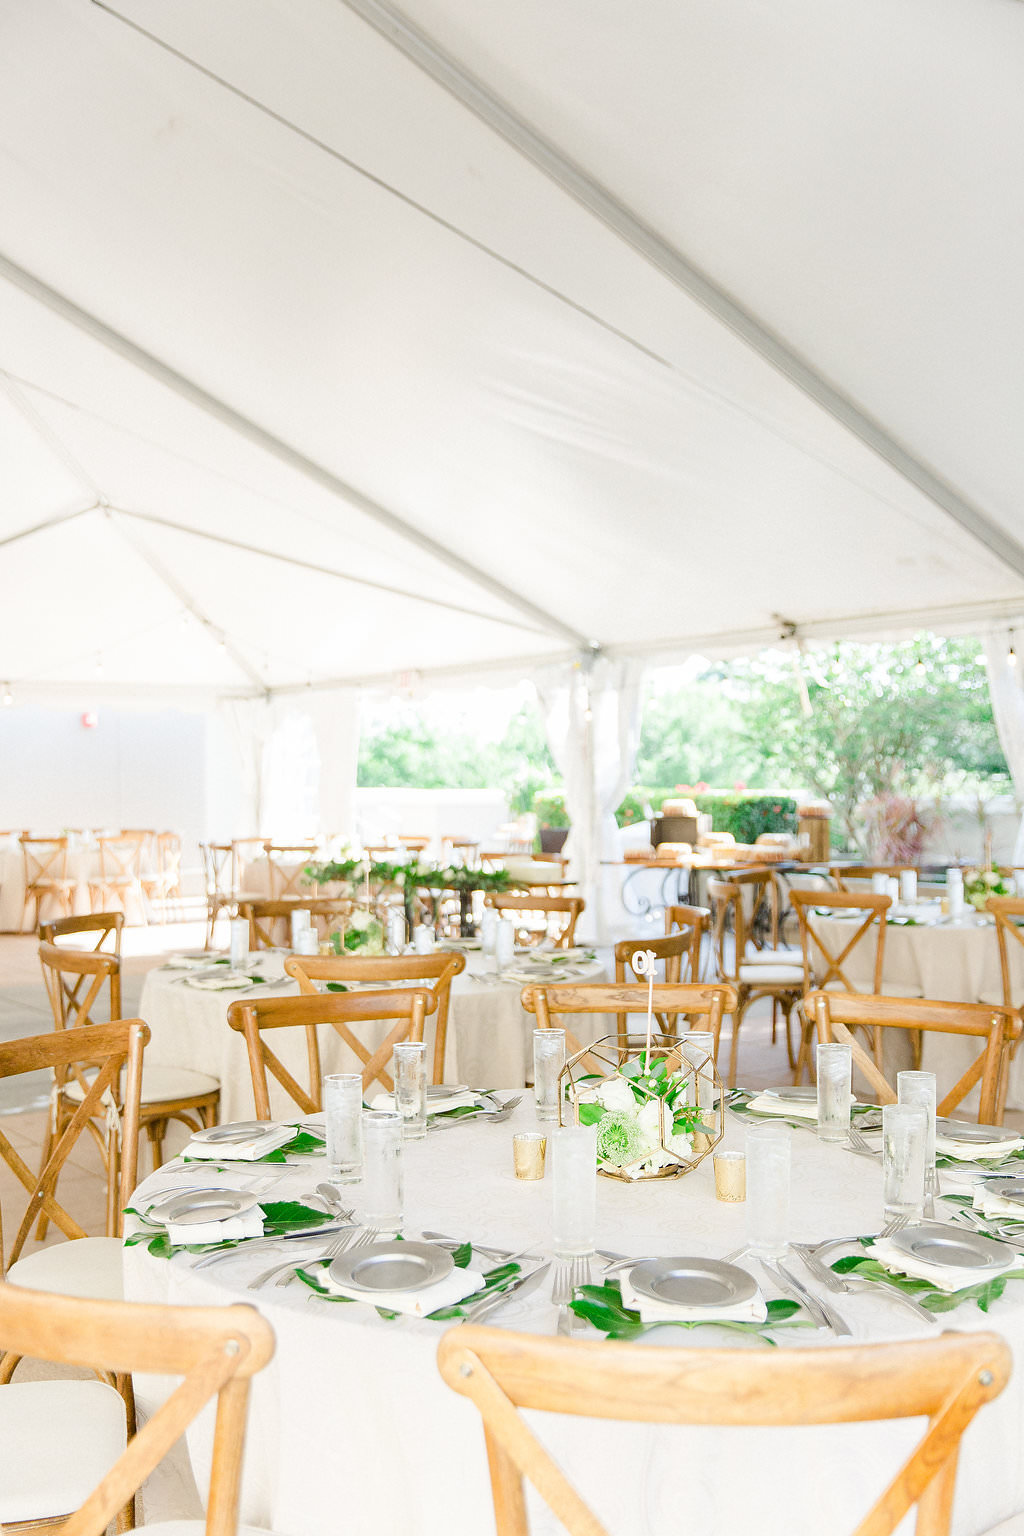 Classic, Organic Earthy Garden Wedding Reception Decor, Round Tables with White Tablecloths, Wooden Chiavari Chairs, Low Geometric Gold Vase Centerpiece | Tampa Bay Wedding Hotel Venue Epicurean Hotel